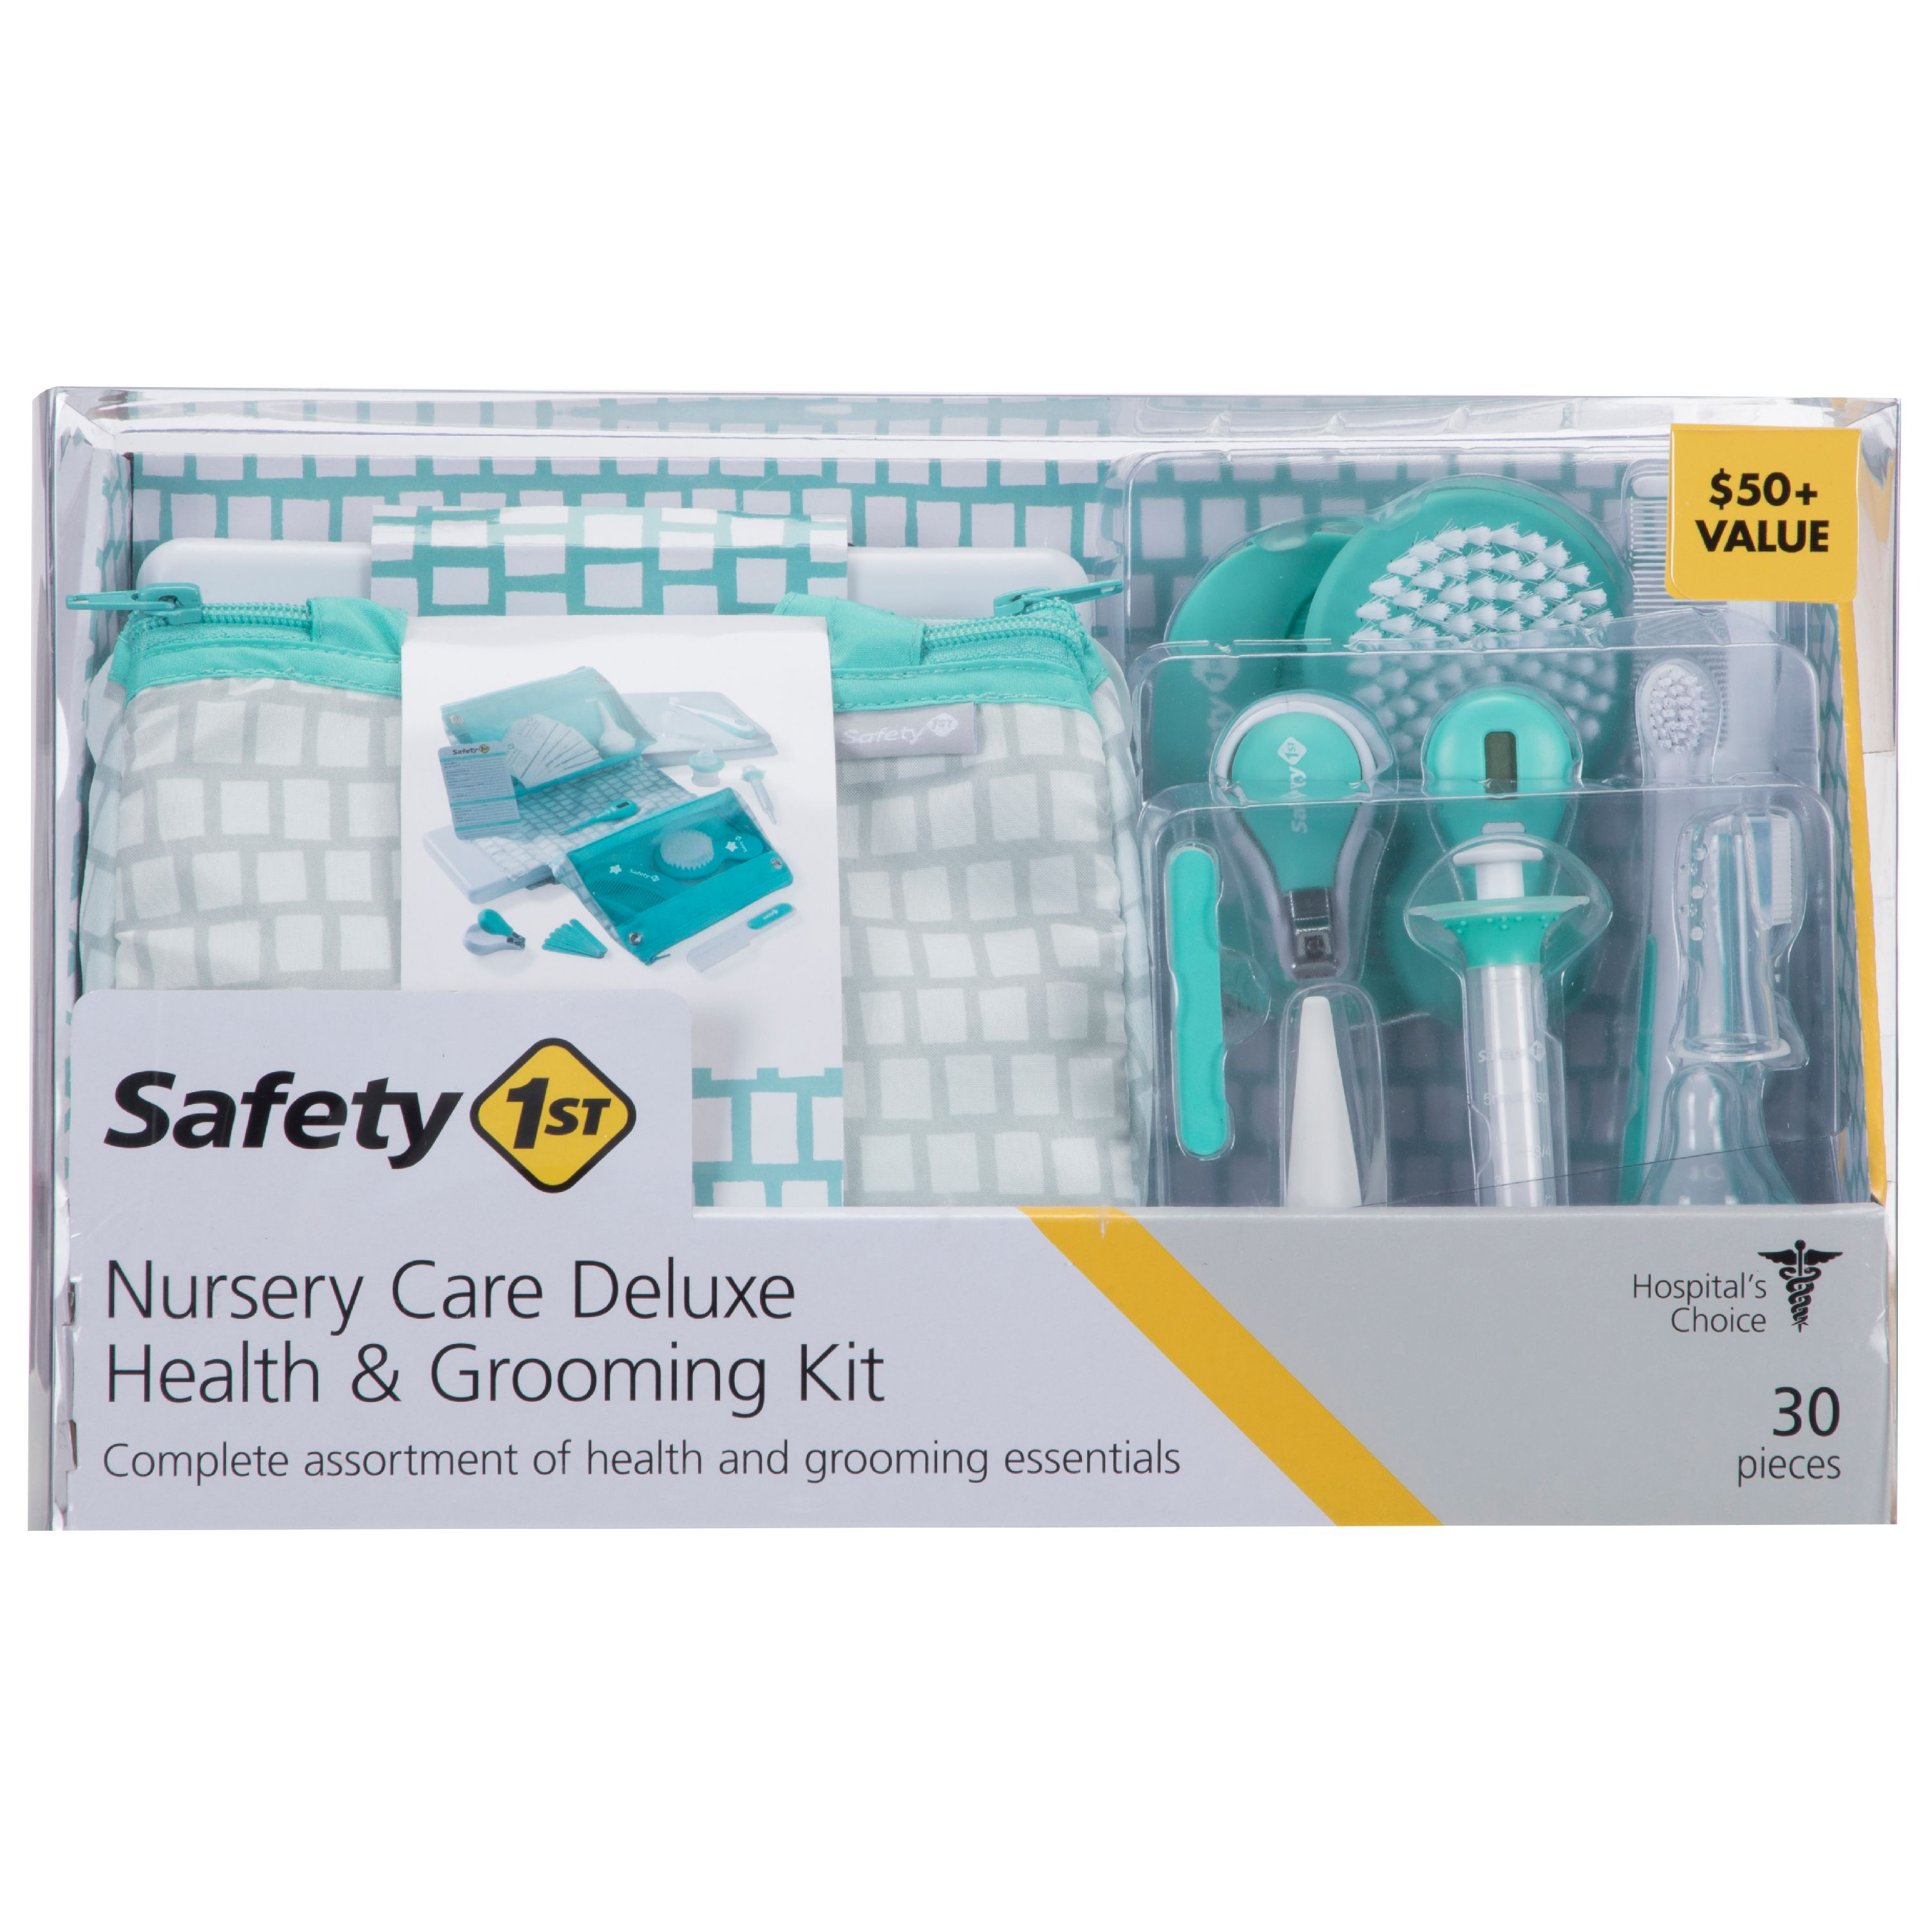 Safety 1st Nursery Care Deluxe Health & Grooming Kit, Sea Stone Aqua